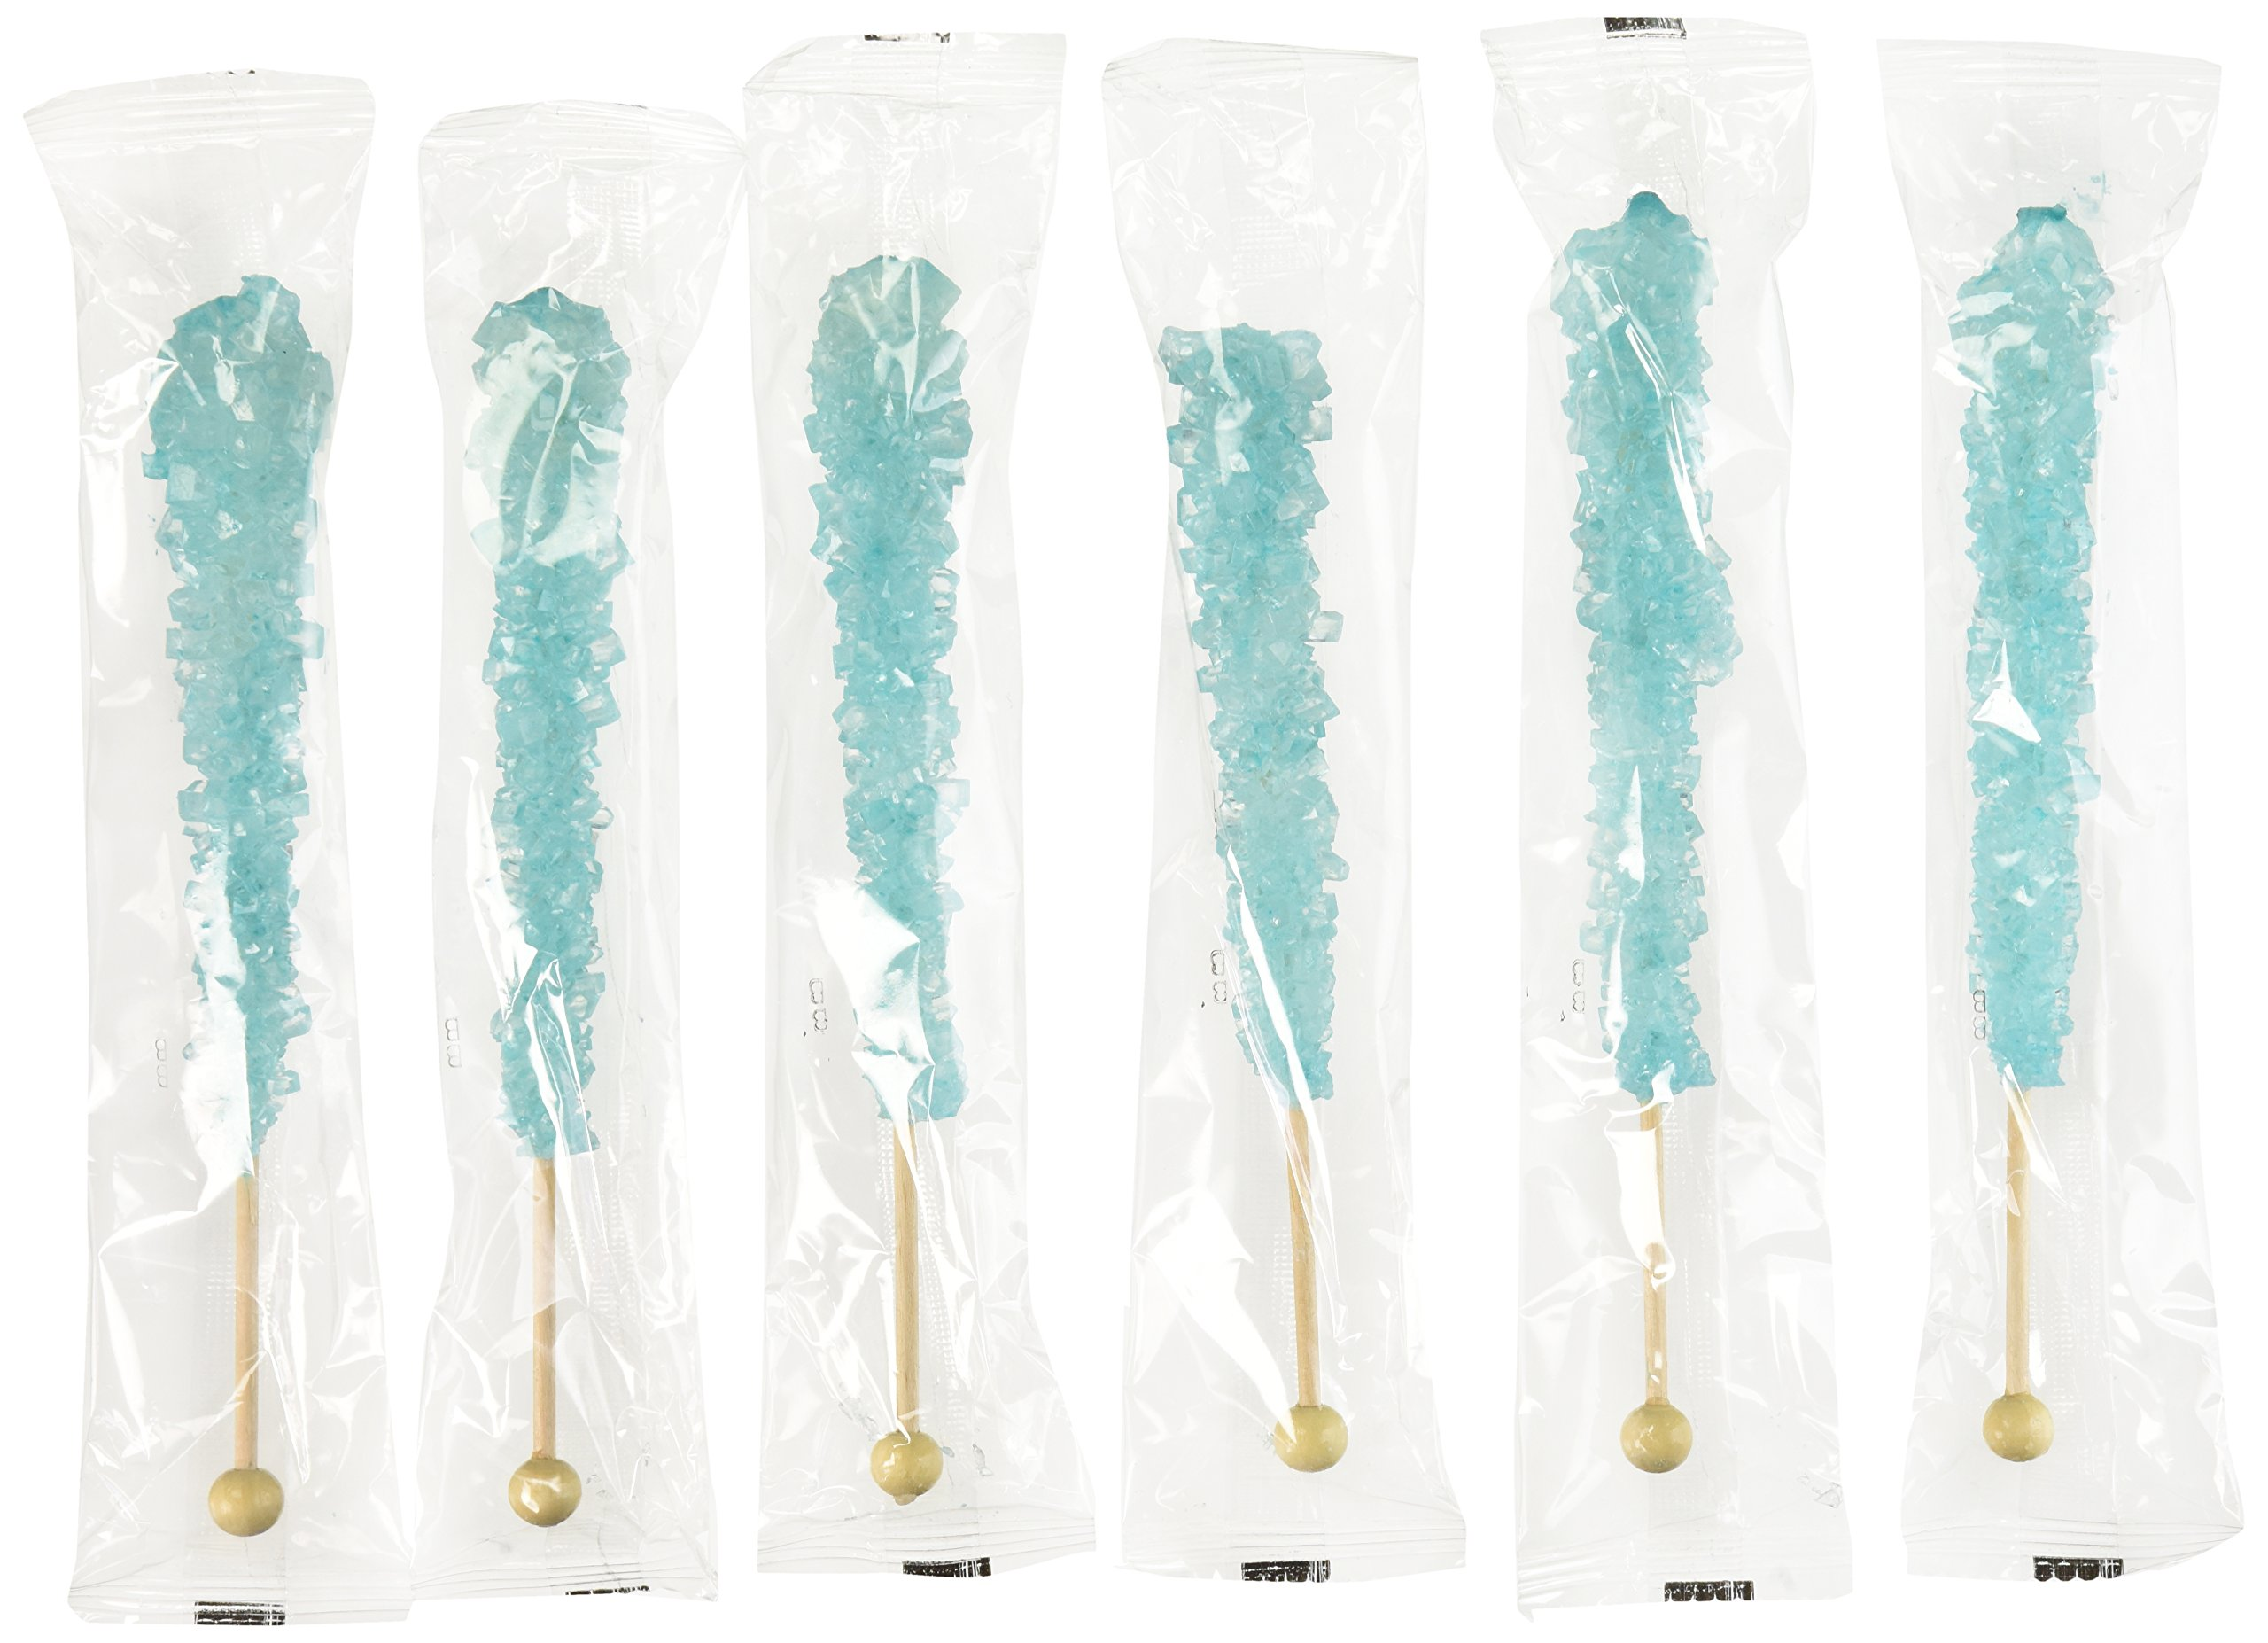 Amazon.com : Rock Candy on a Stick - Pack of 24 (White Sugar) - How ...